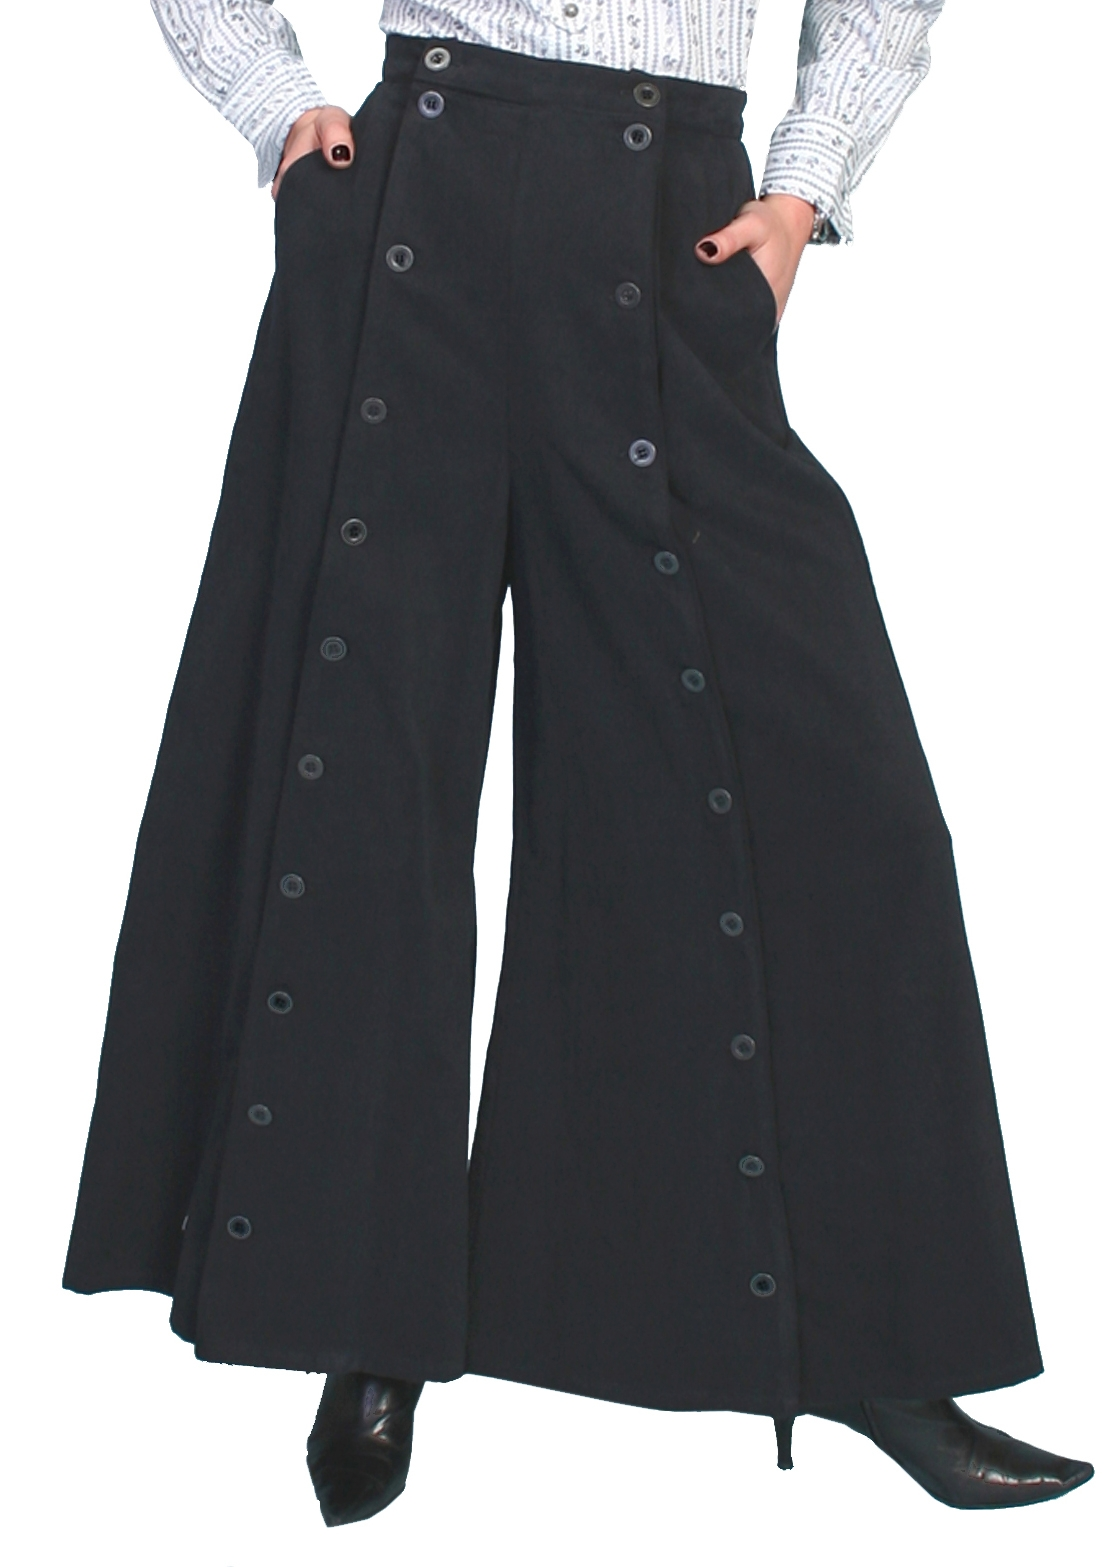 Scully USA made Womens black riding pants, riding pants for women, western riding pants, usa made riding pants